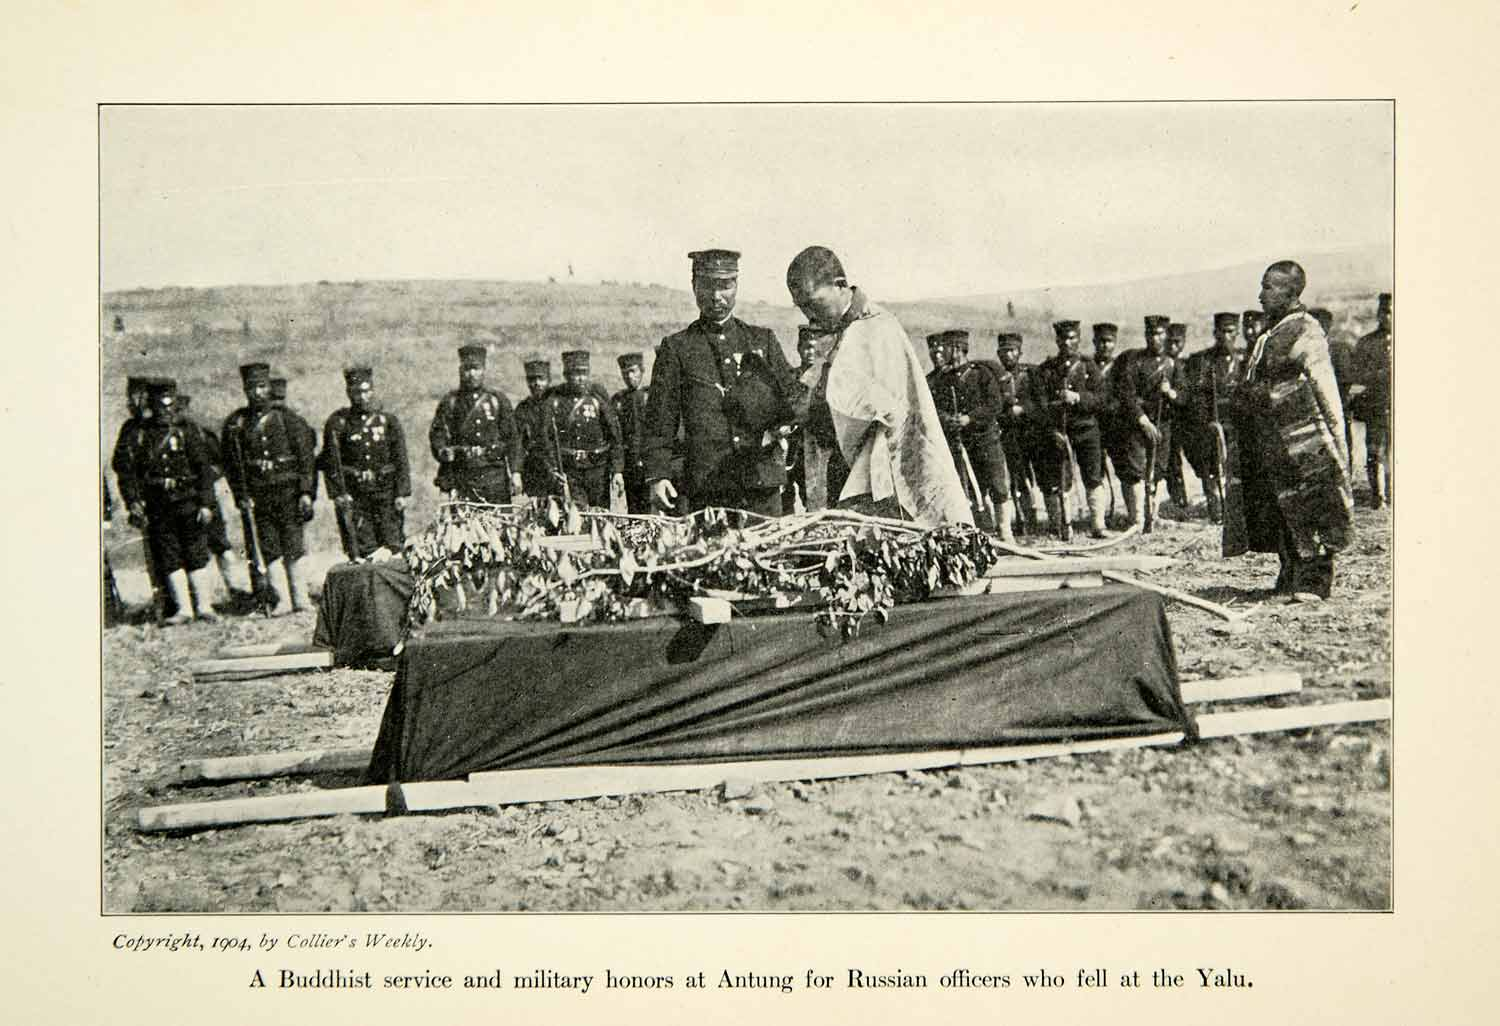 1904 Print Russo-Japanese War Buddhist Funeral Service Russian Officers XGDD5